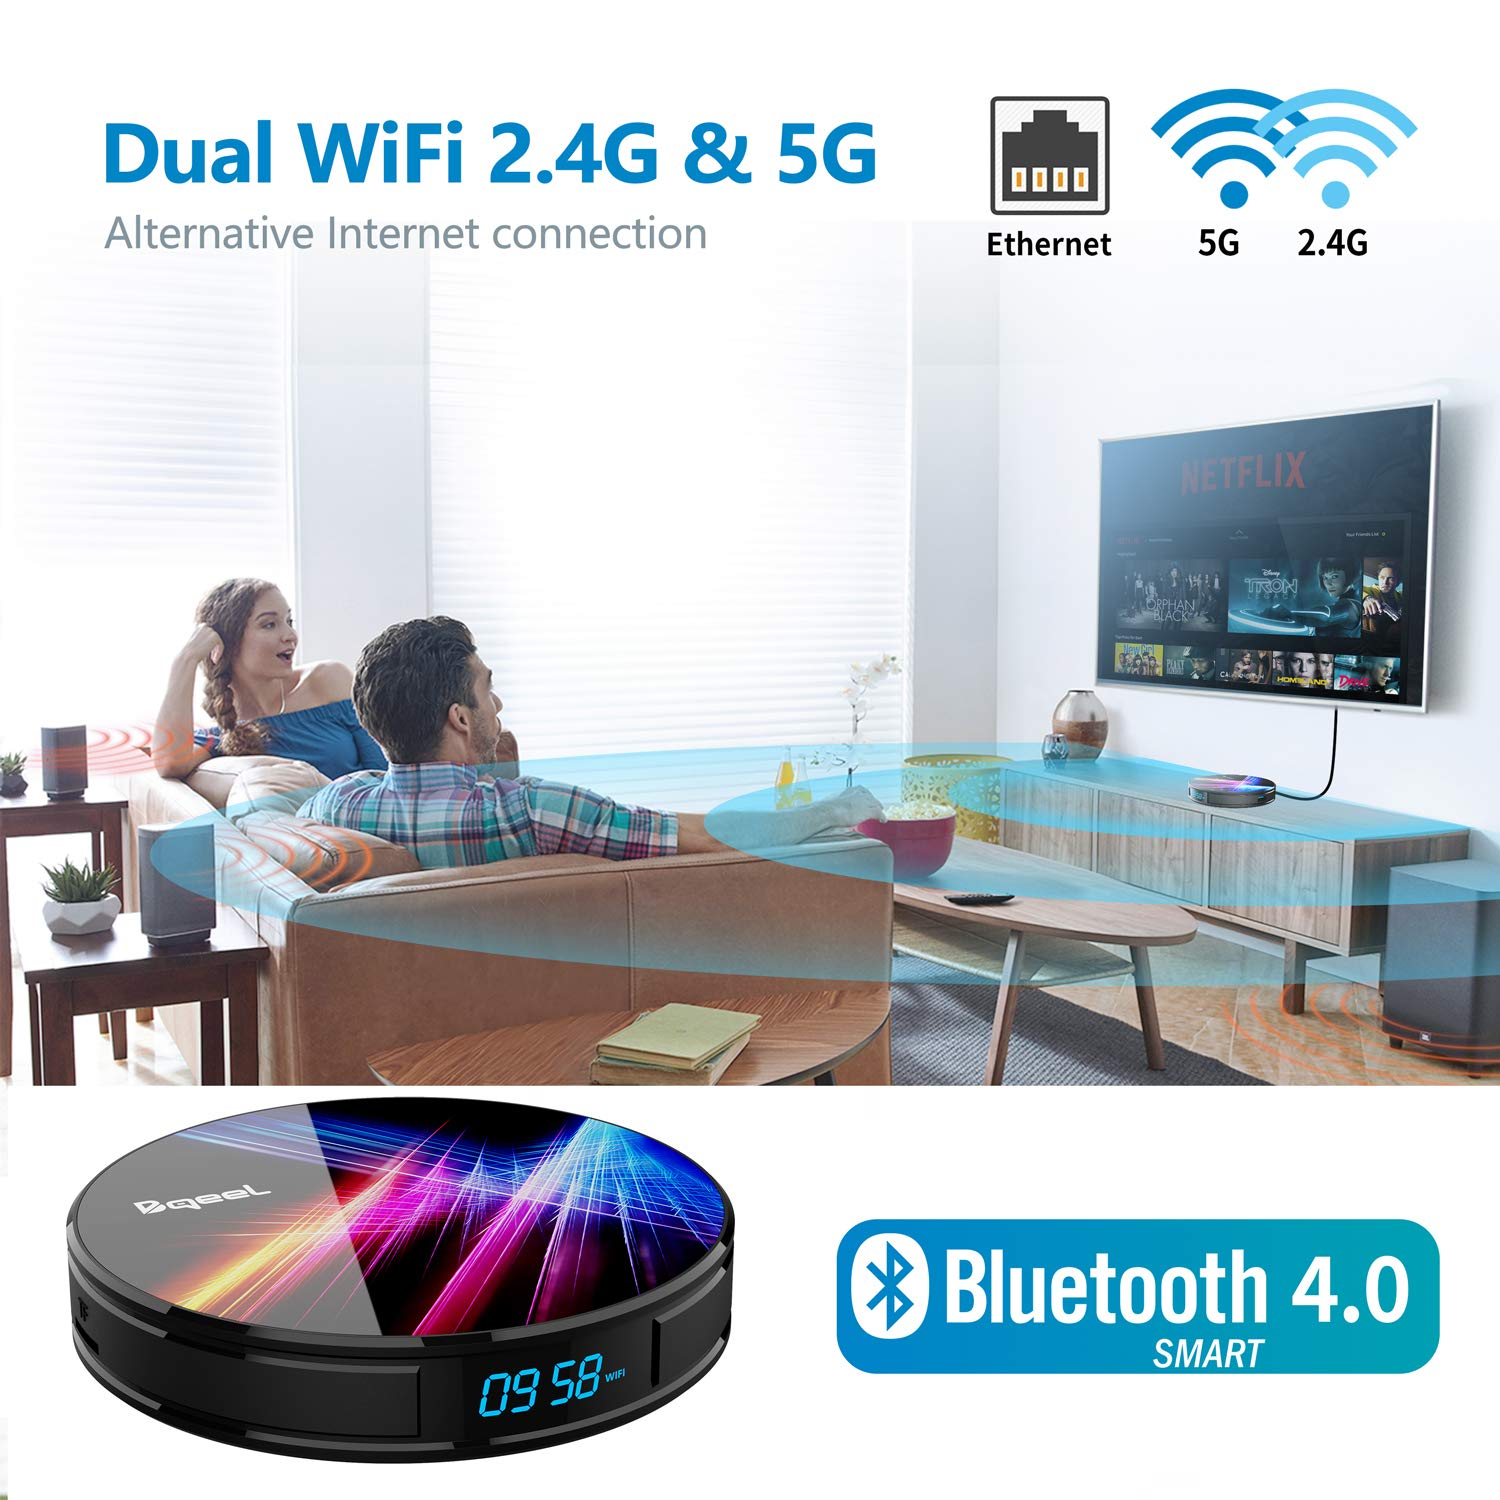 Dual WIFI 2.4//5G Bqeel Android 9.0 TV Box R1 Pro 100M LAN 4G DDR3+32G EMMC// RK3318 Quad-Core 64bit TV box android Bluetooth 4.0//USB 3.0// 3D 4K Android TV